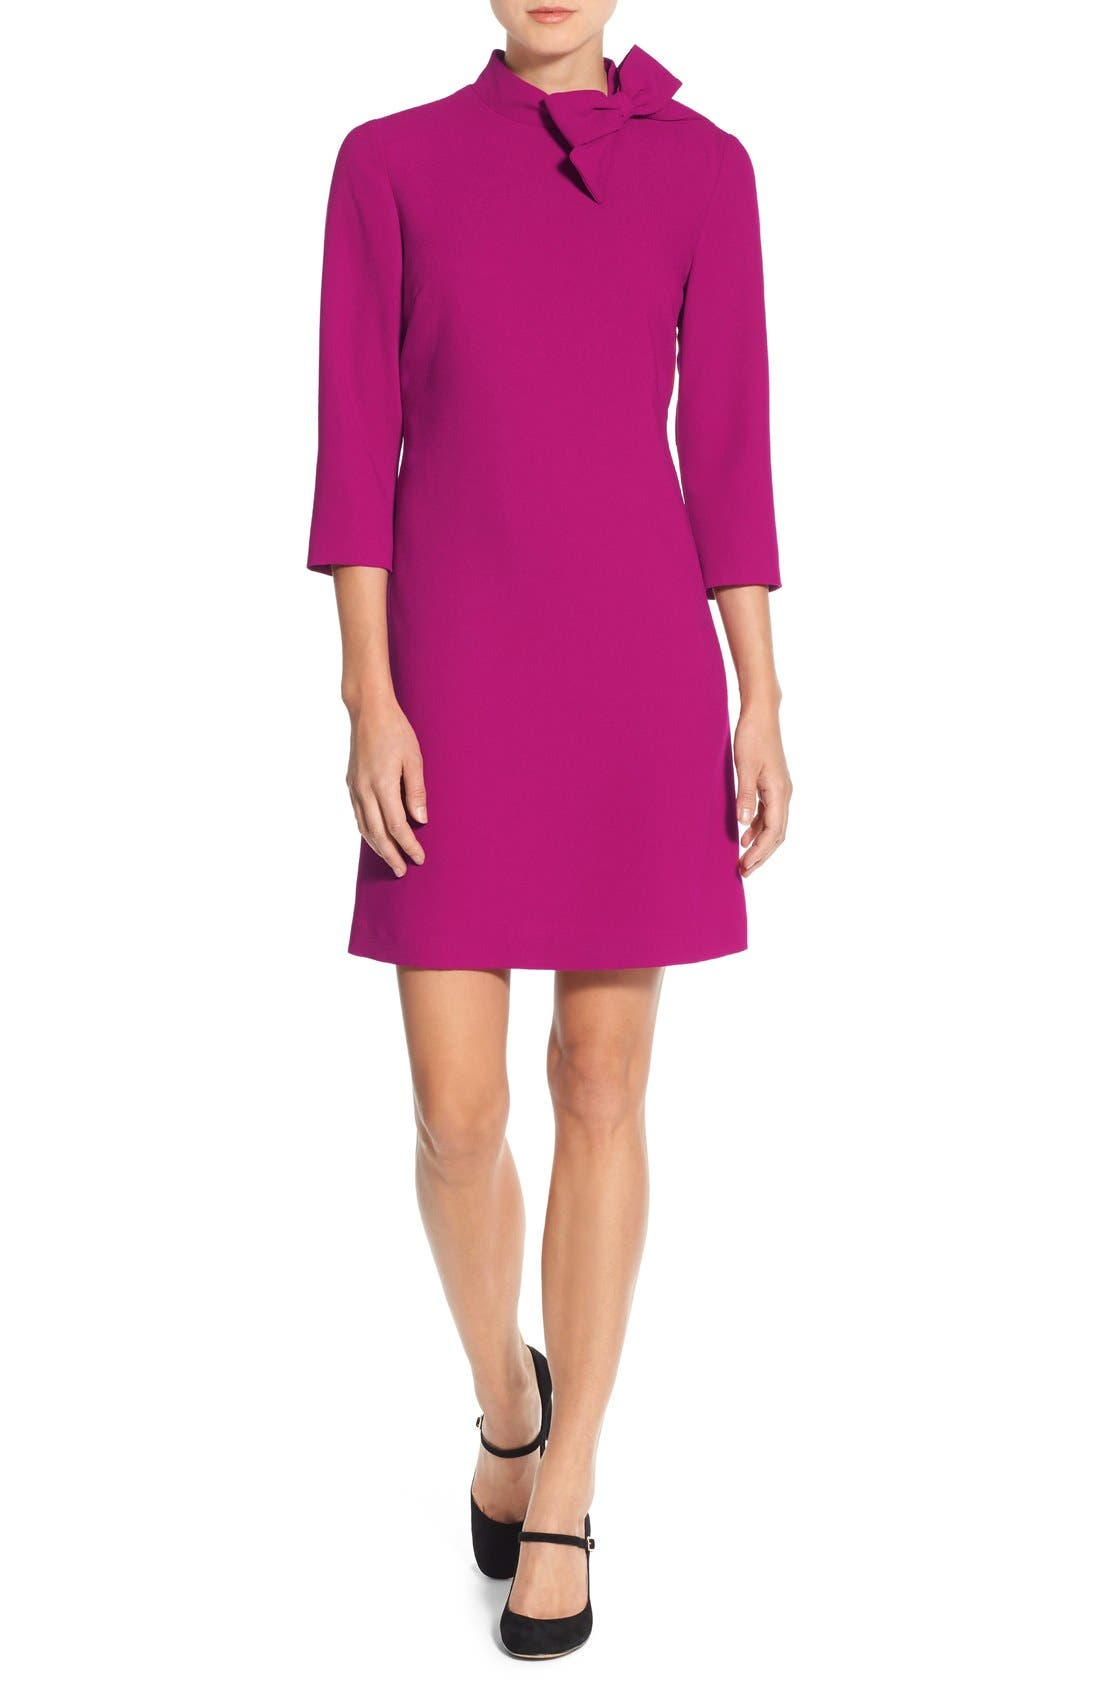 Bow Crepe A-Line Dress,                             Alternate thumbnail 12, color,                             PINK